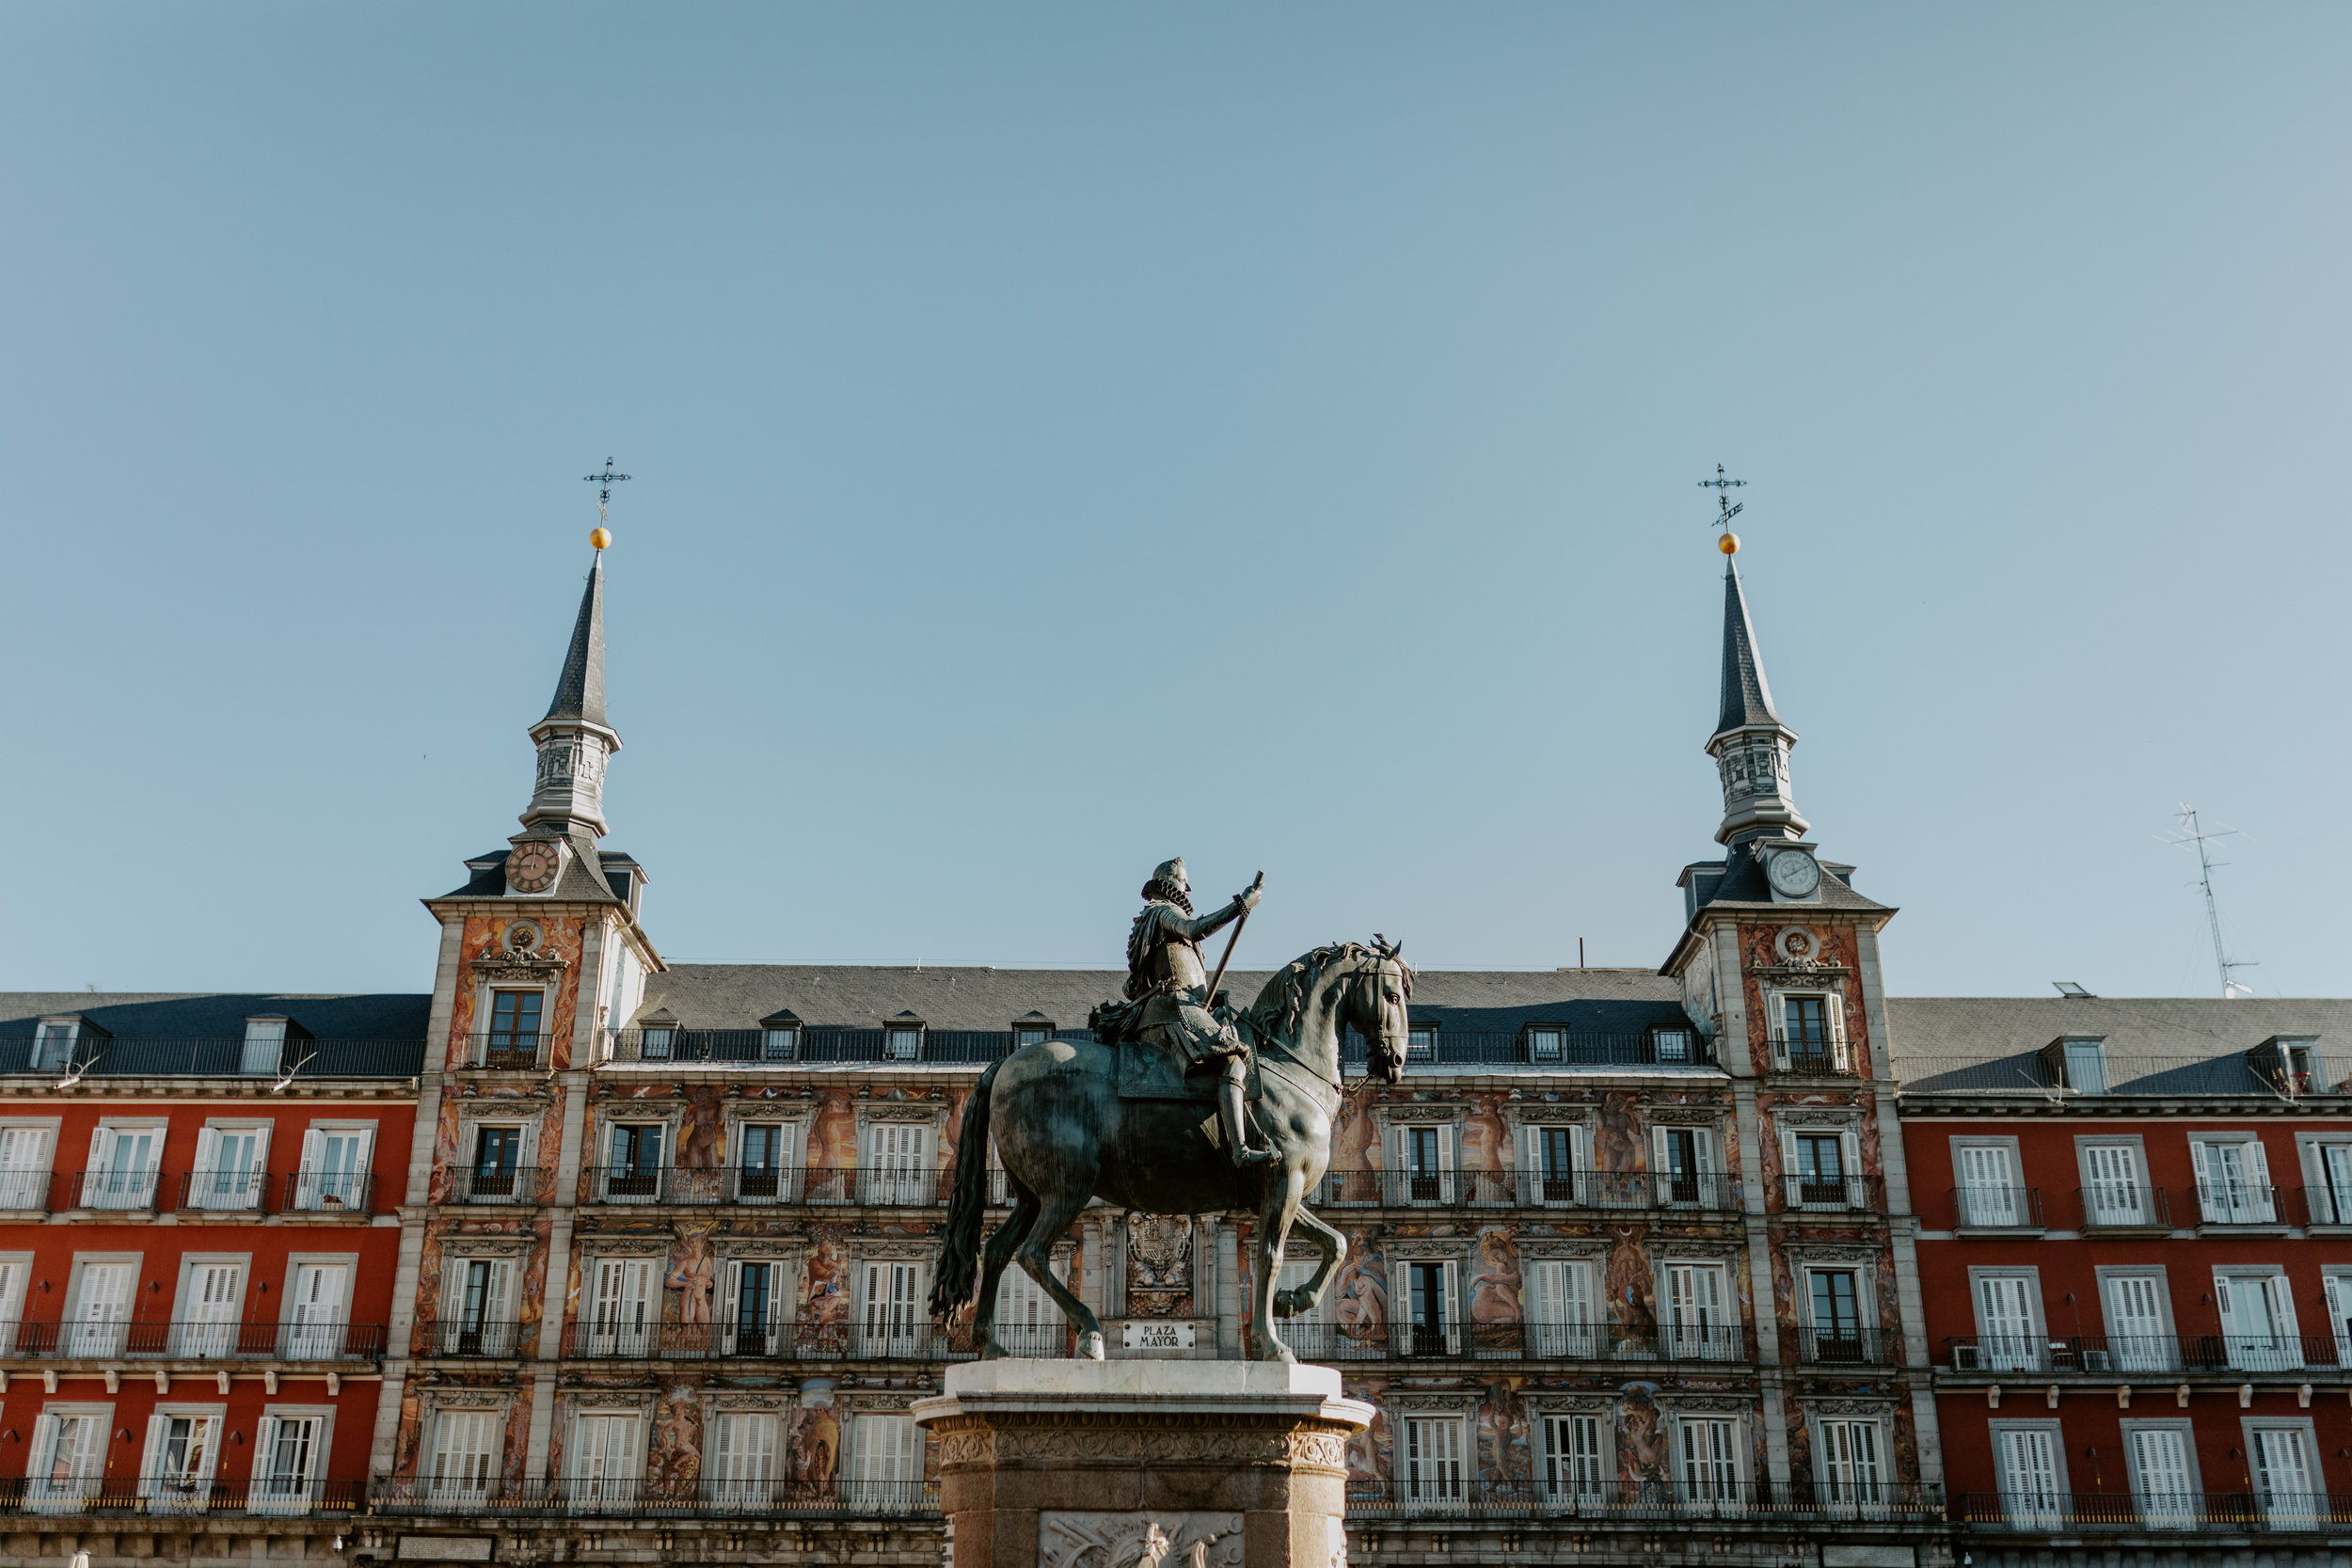 King Philips III's bronze statue is set in the center of Plaza Mayor. Surrounding, a lively square of vendors, tourists, locals passing through and waiters tending to their tables.